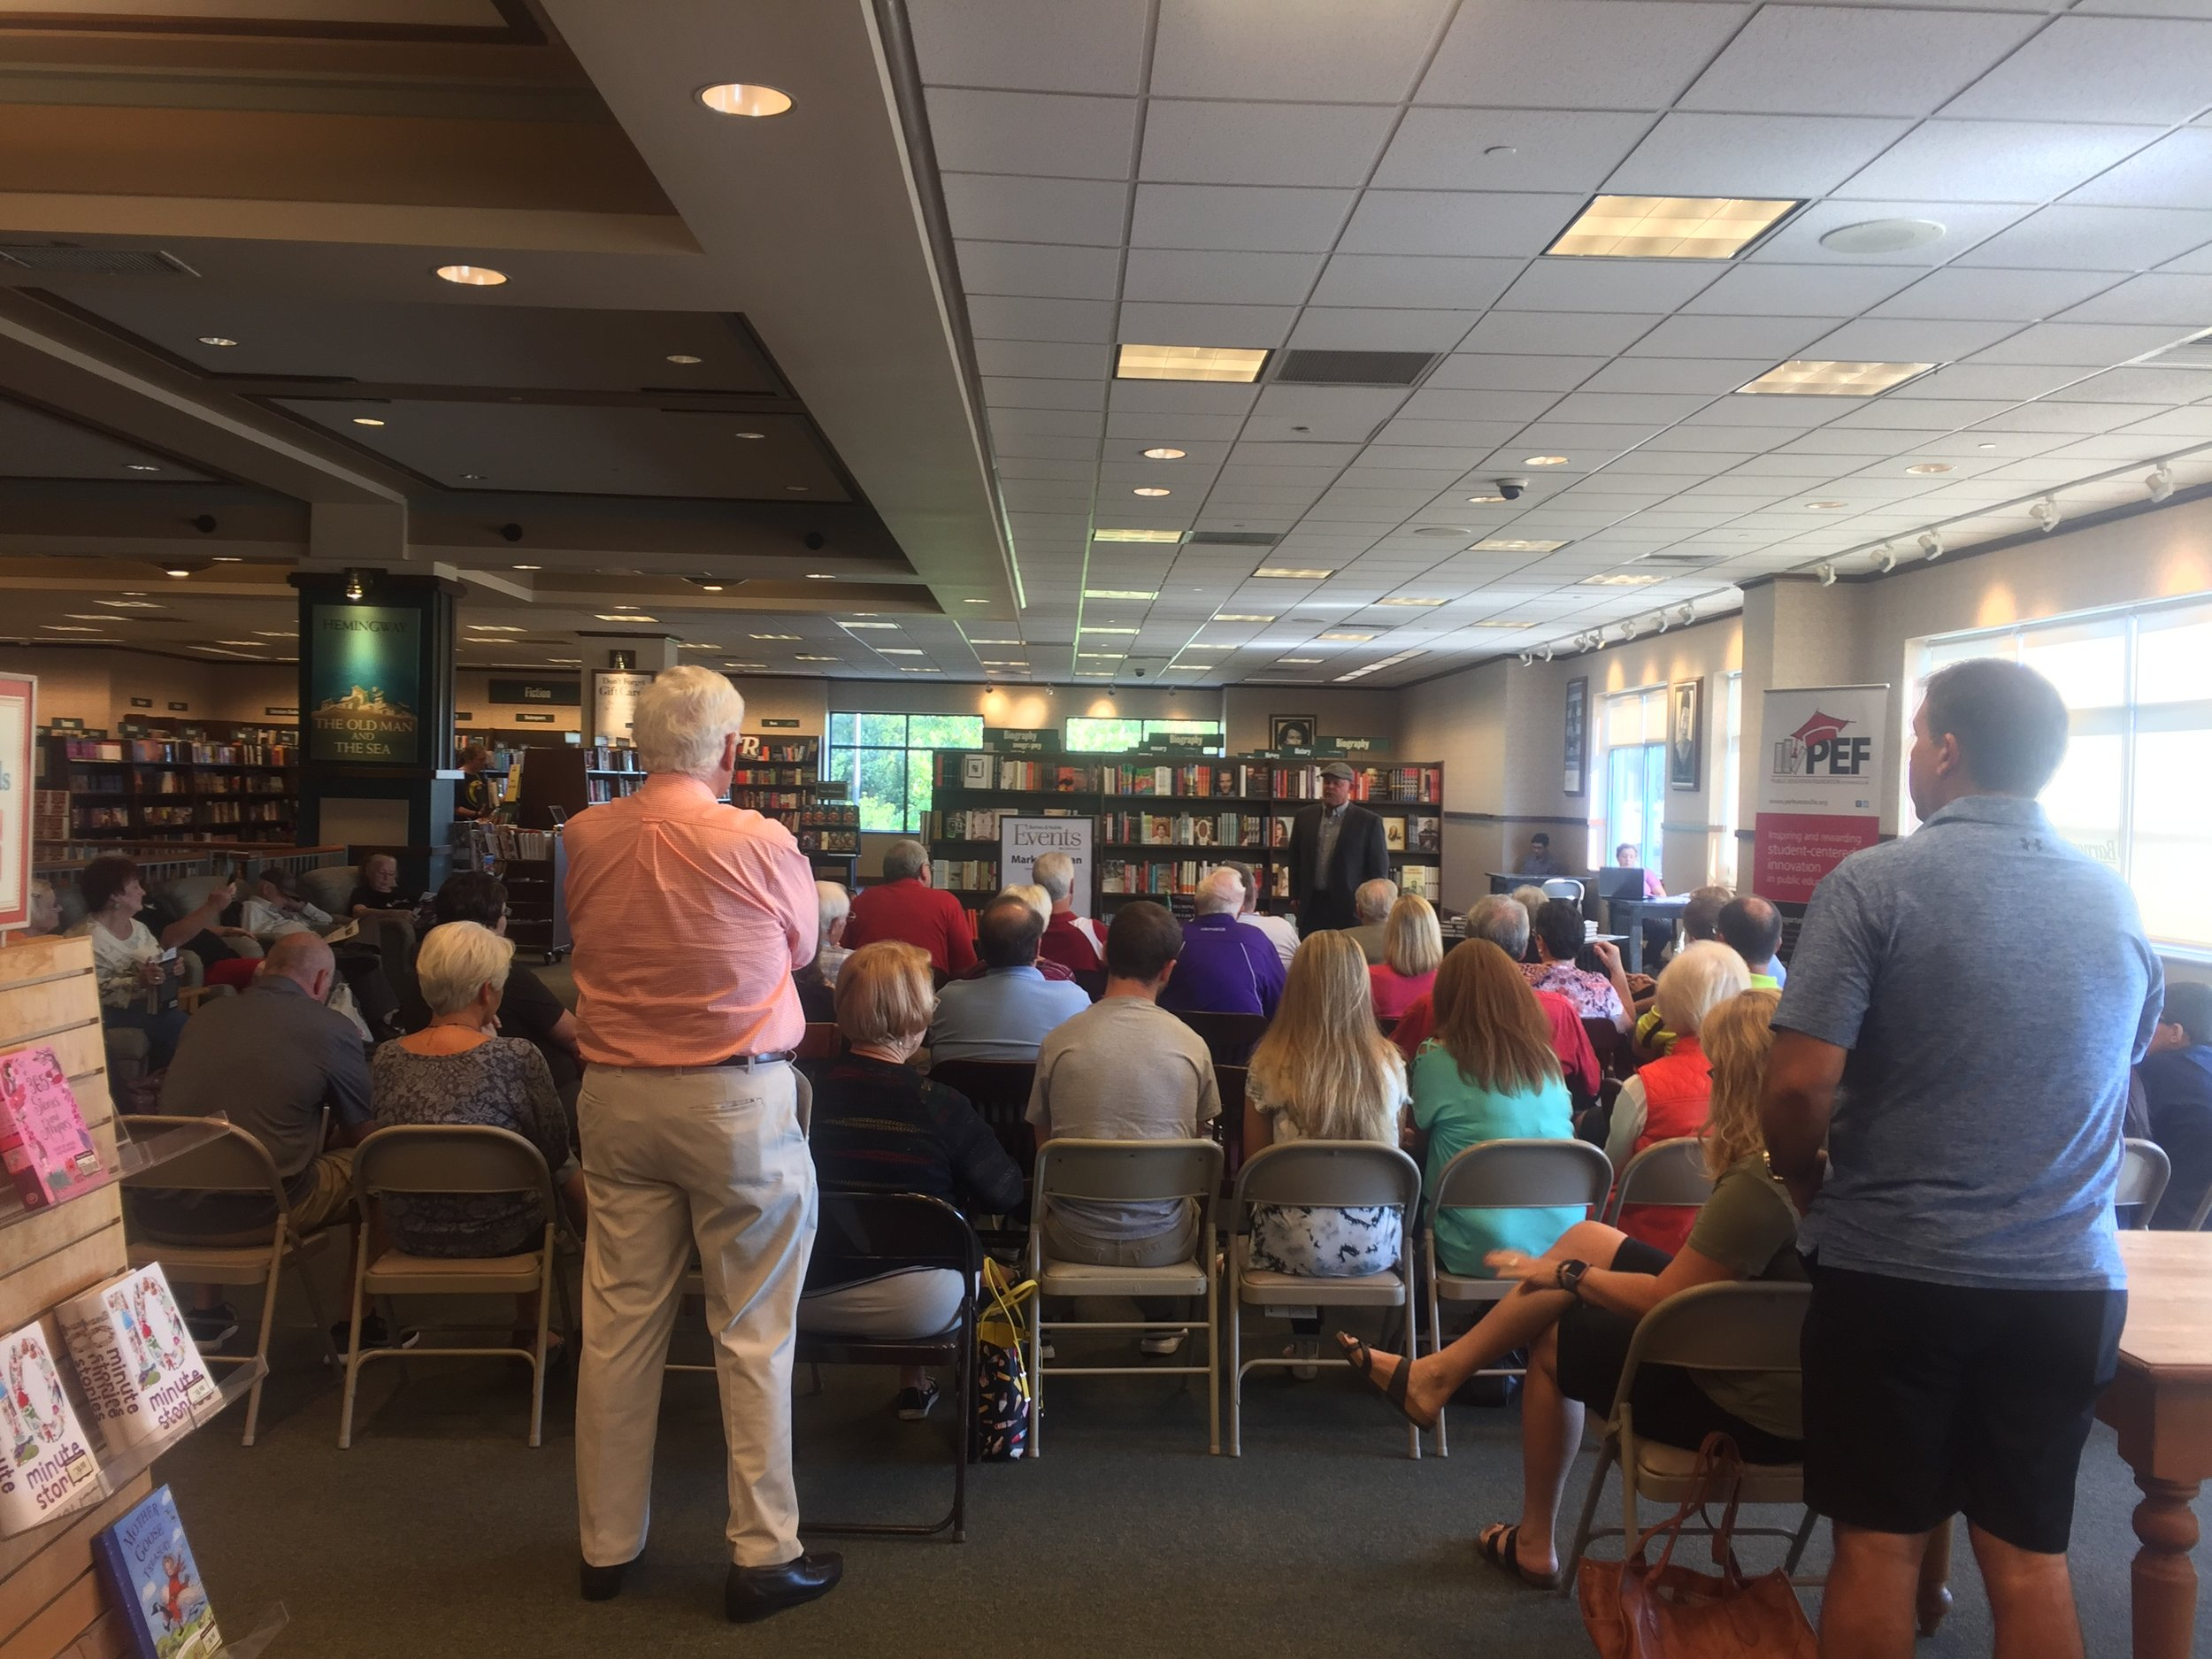 Standing Room Only at the Evansville Barnes & Noble. The man in the pink shirt is a very special guest, by the way: My Evansville Central High School Journalism teacher, Edwin Cole. One of the all-time greats! So nice to see him and his wife Sharon!